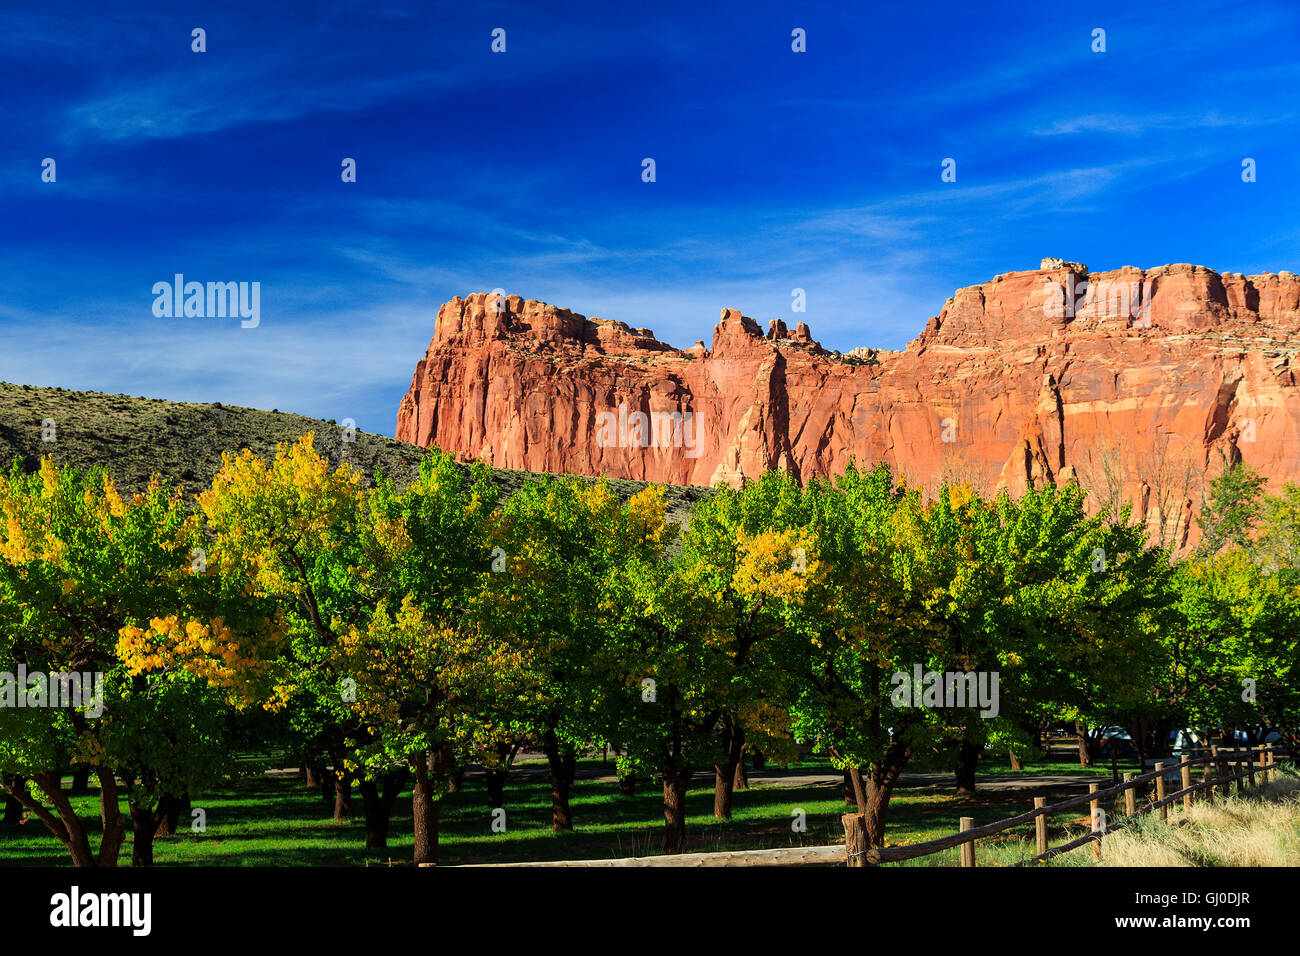 The Cass Mulford orchard starts to show the colors of the fall season in Fruita area of Capitol Reef National Park, - Stock Image